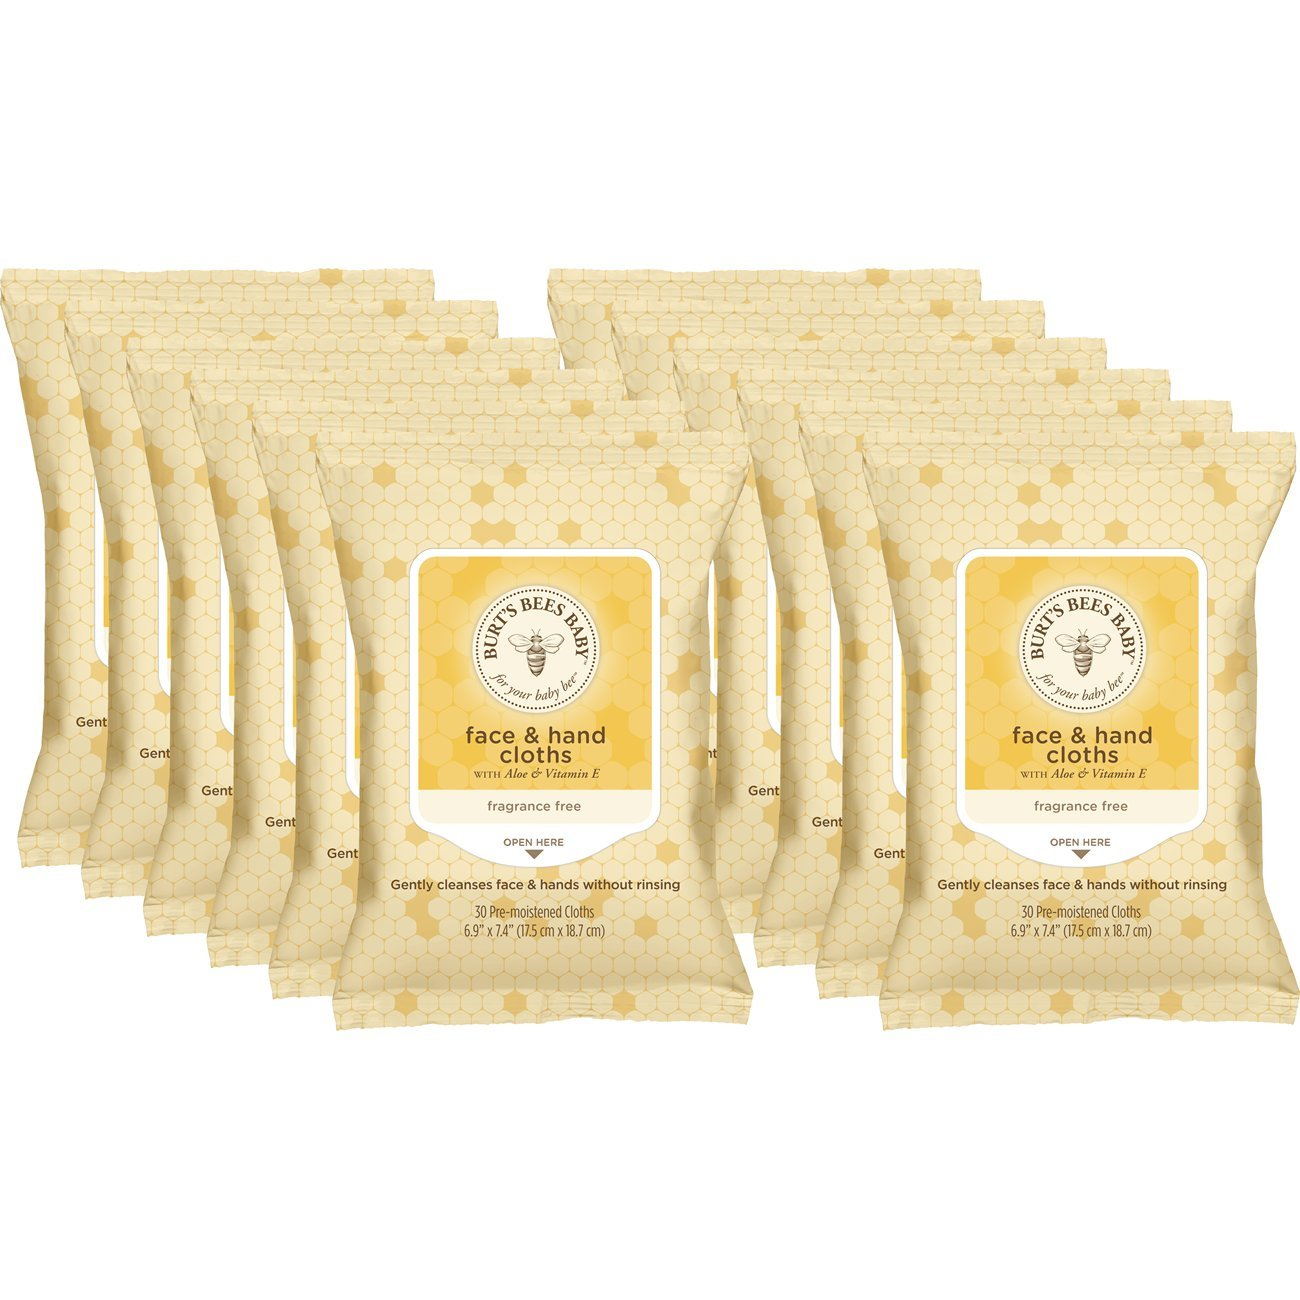 Burt's Bees Baby Face & Hand Cloths, Unscented Cleansing Wipes - 30 Wipes (Pack of 12)